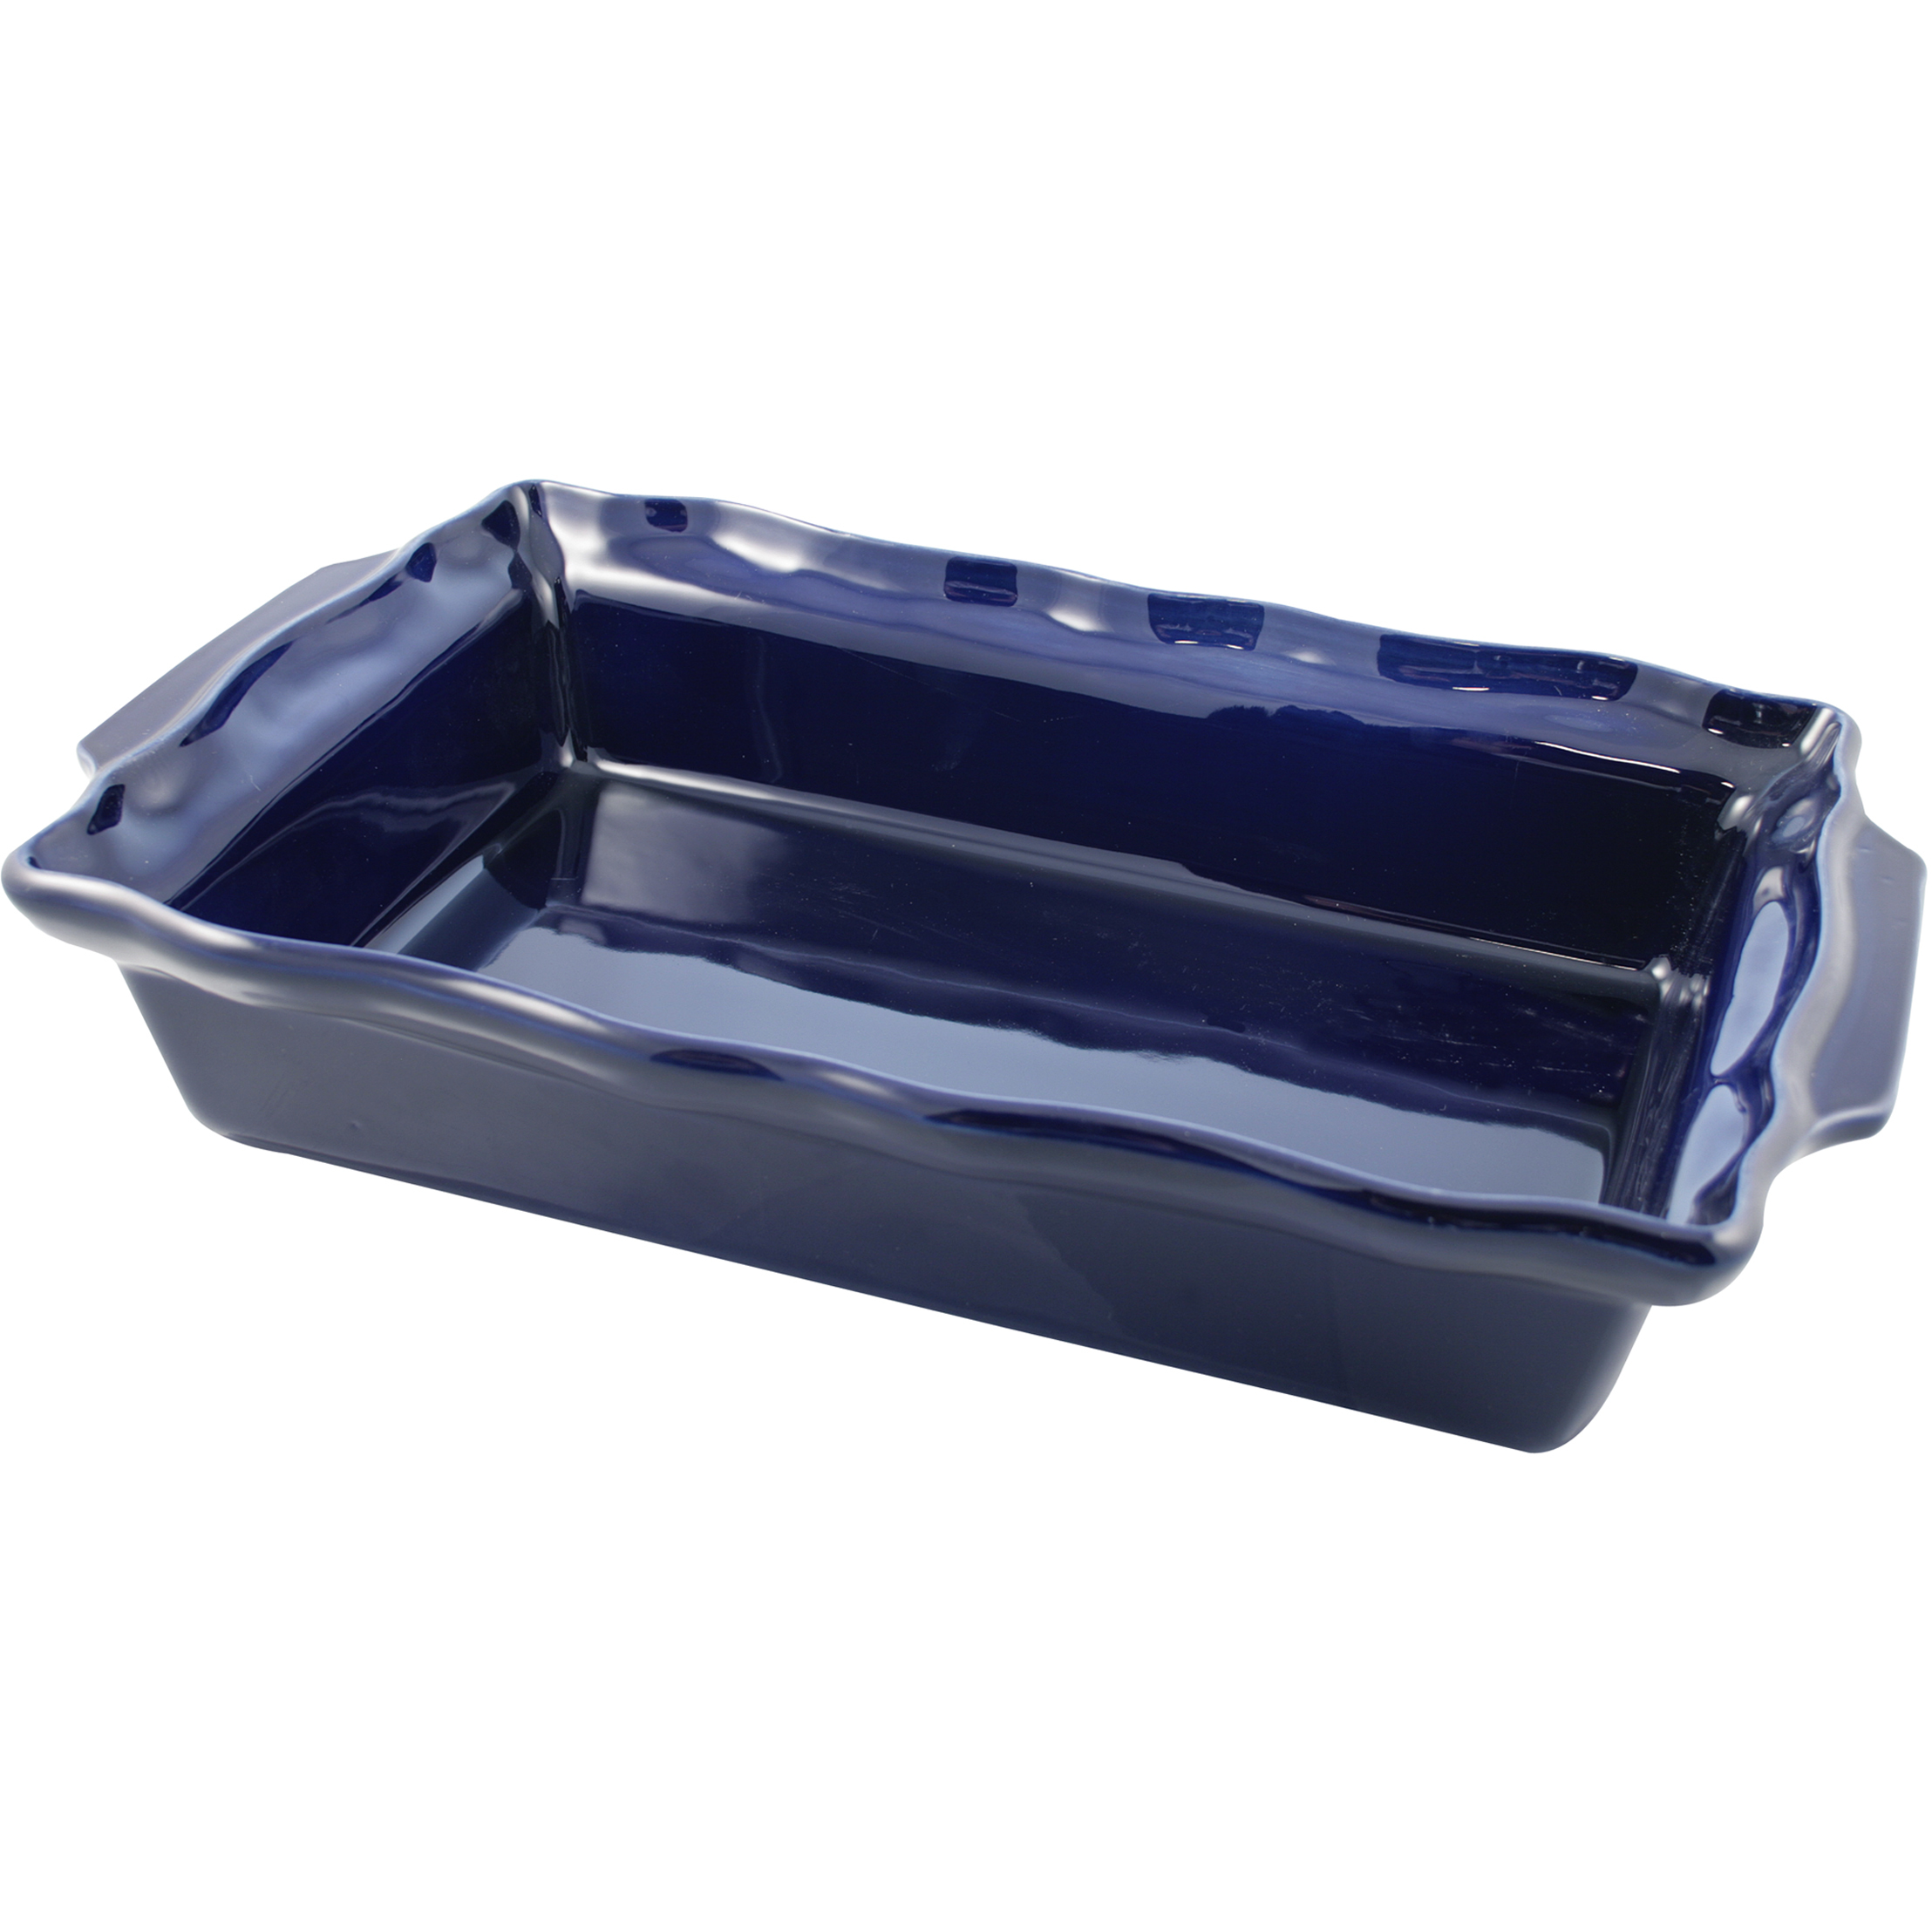 Le Cordon Bleu Paris By Swissmar Rectangular Cordon Bleu Ceramic 5.3 Quart Roasting Dish